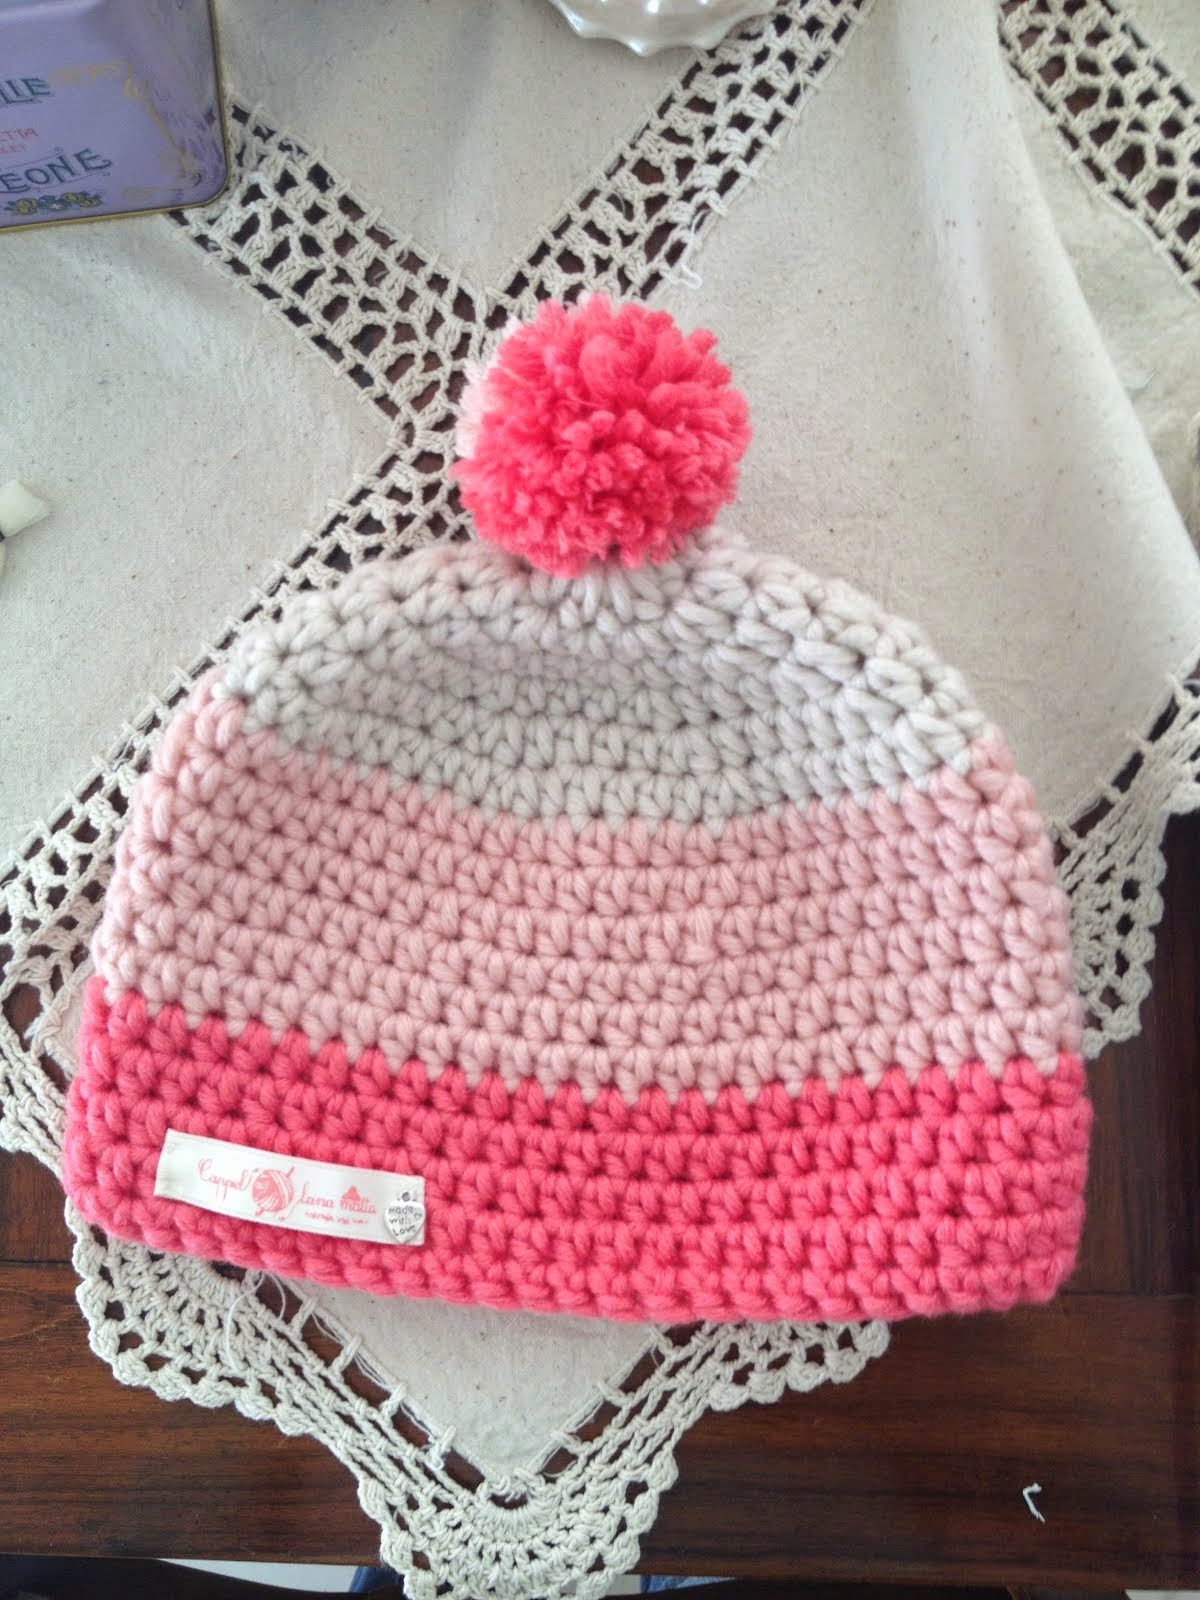 My last crochet hat